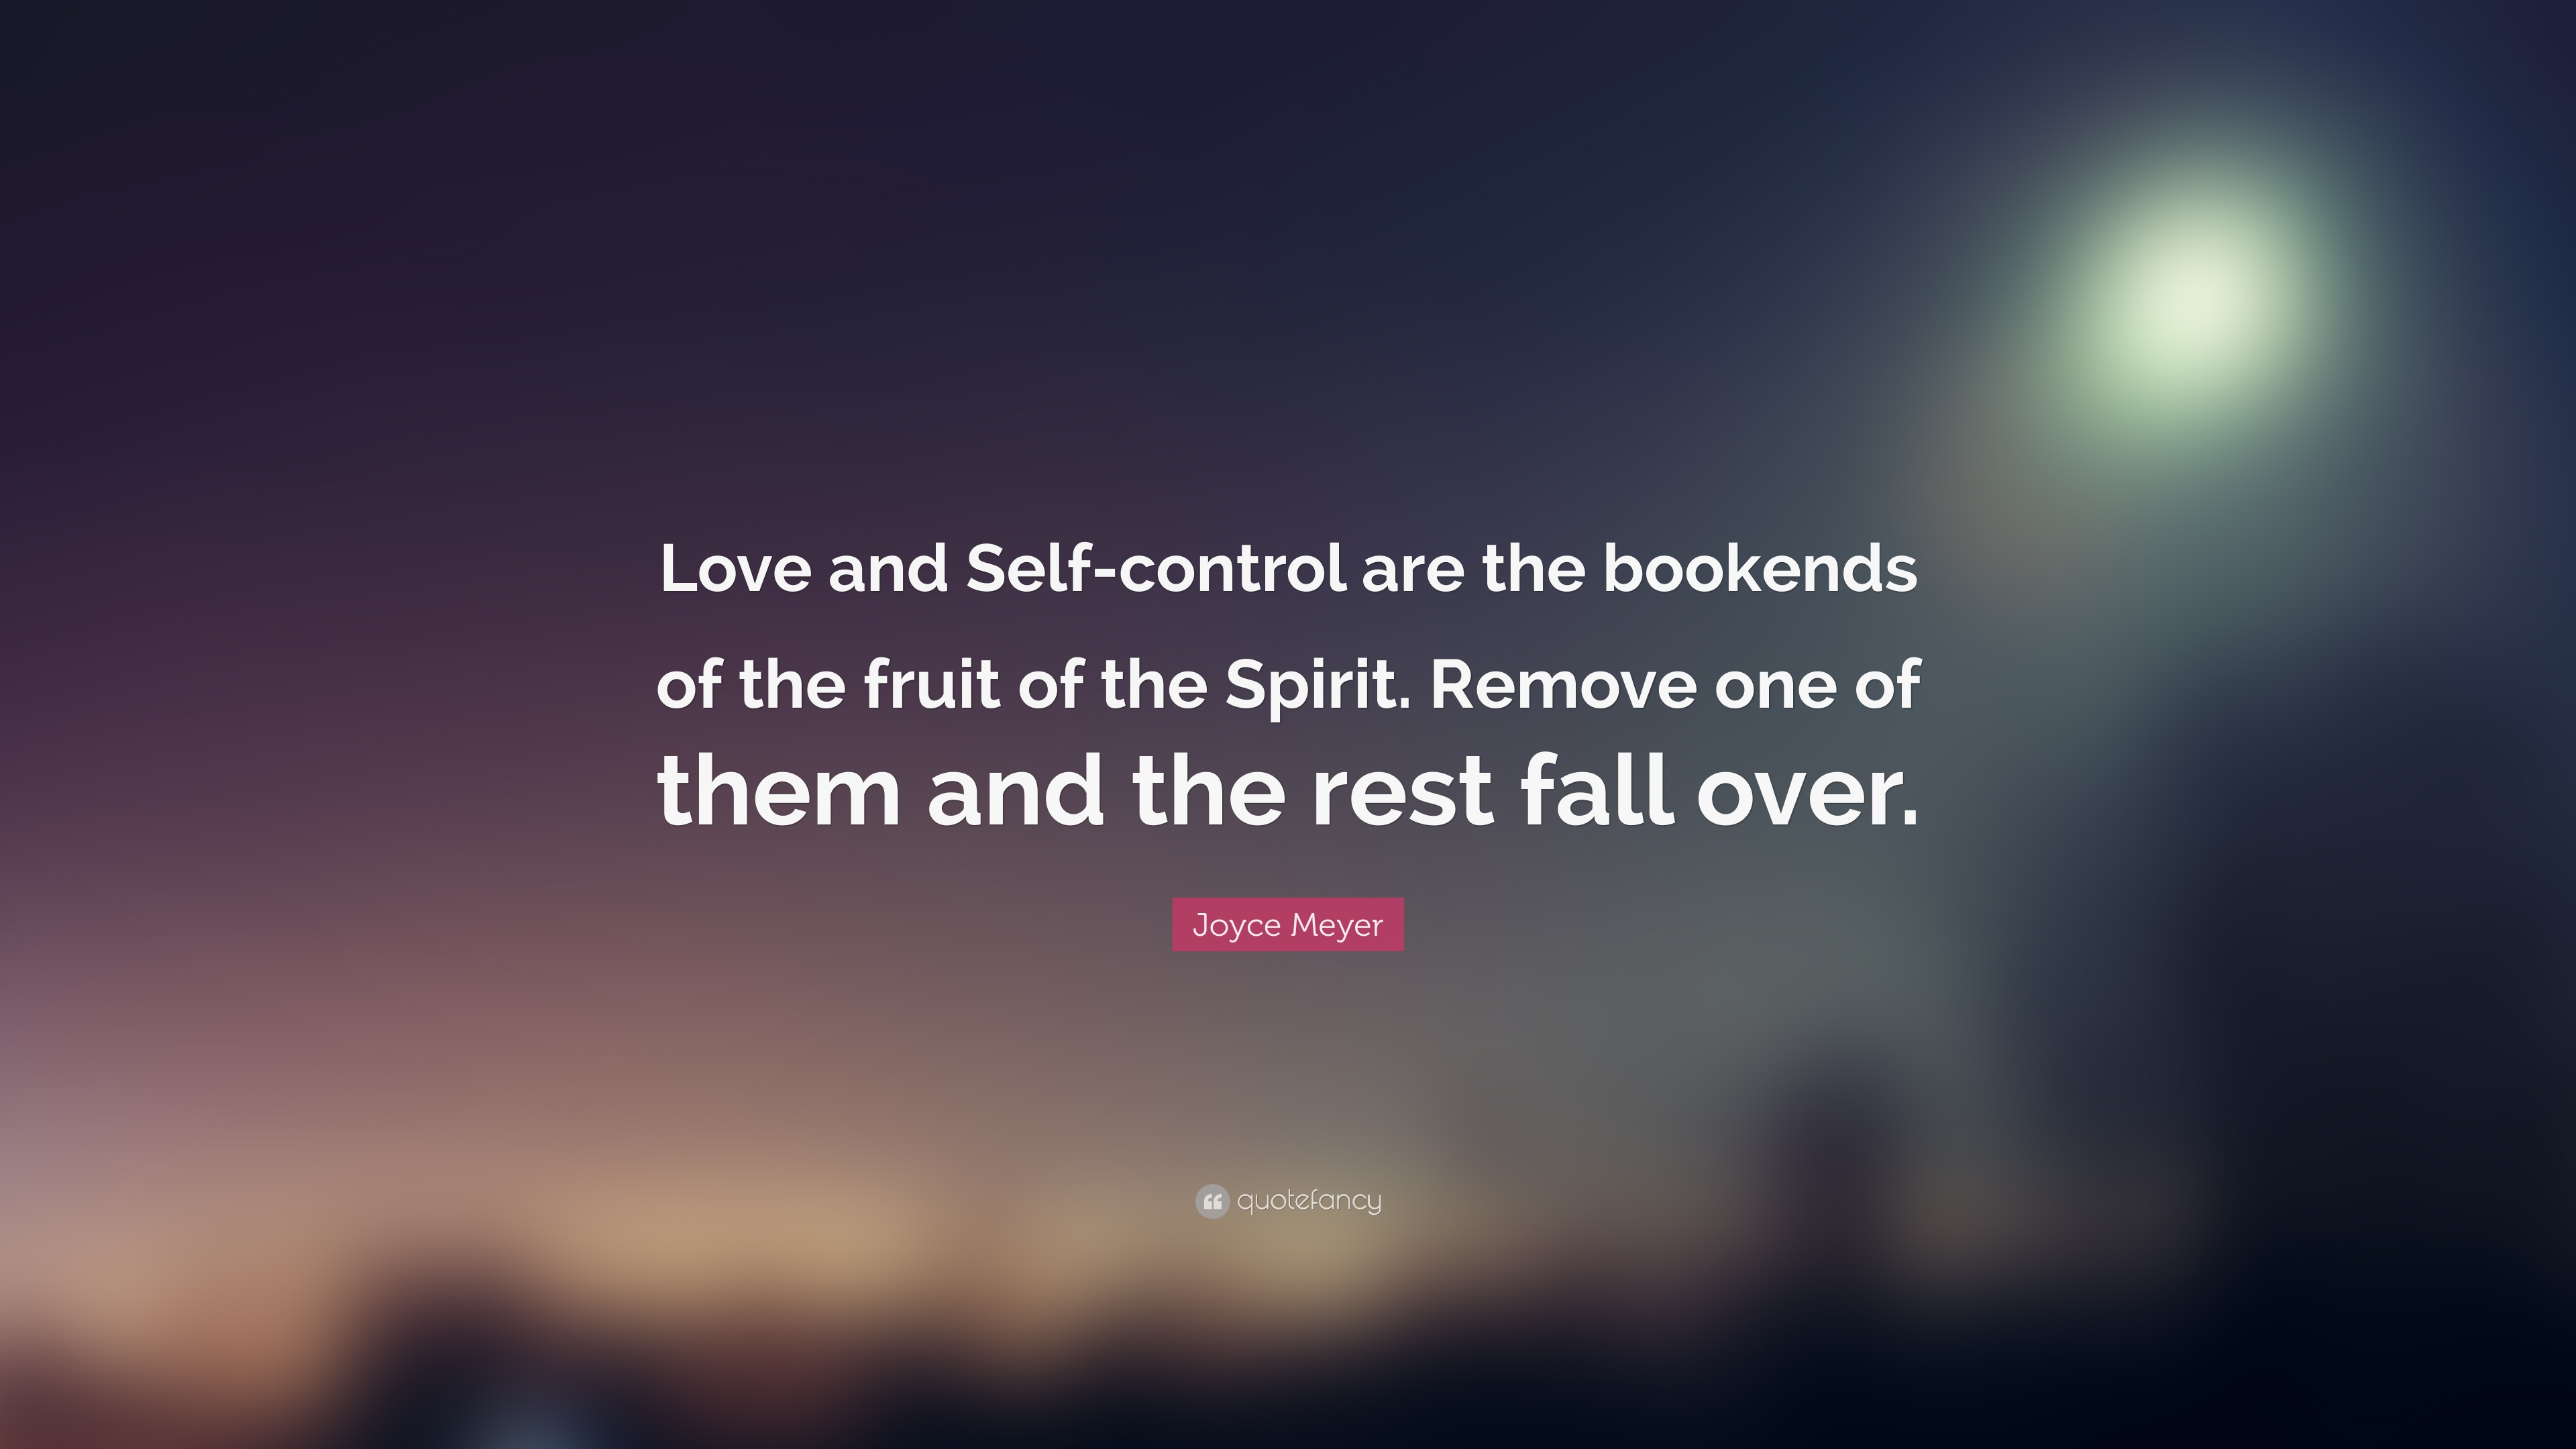 Rest In Peace Quotes Wallpaper Joyce Meyer Quote Love And Self Control Are The Bookends